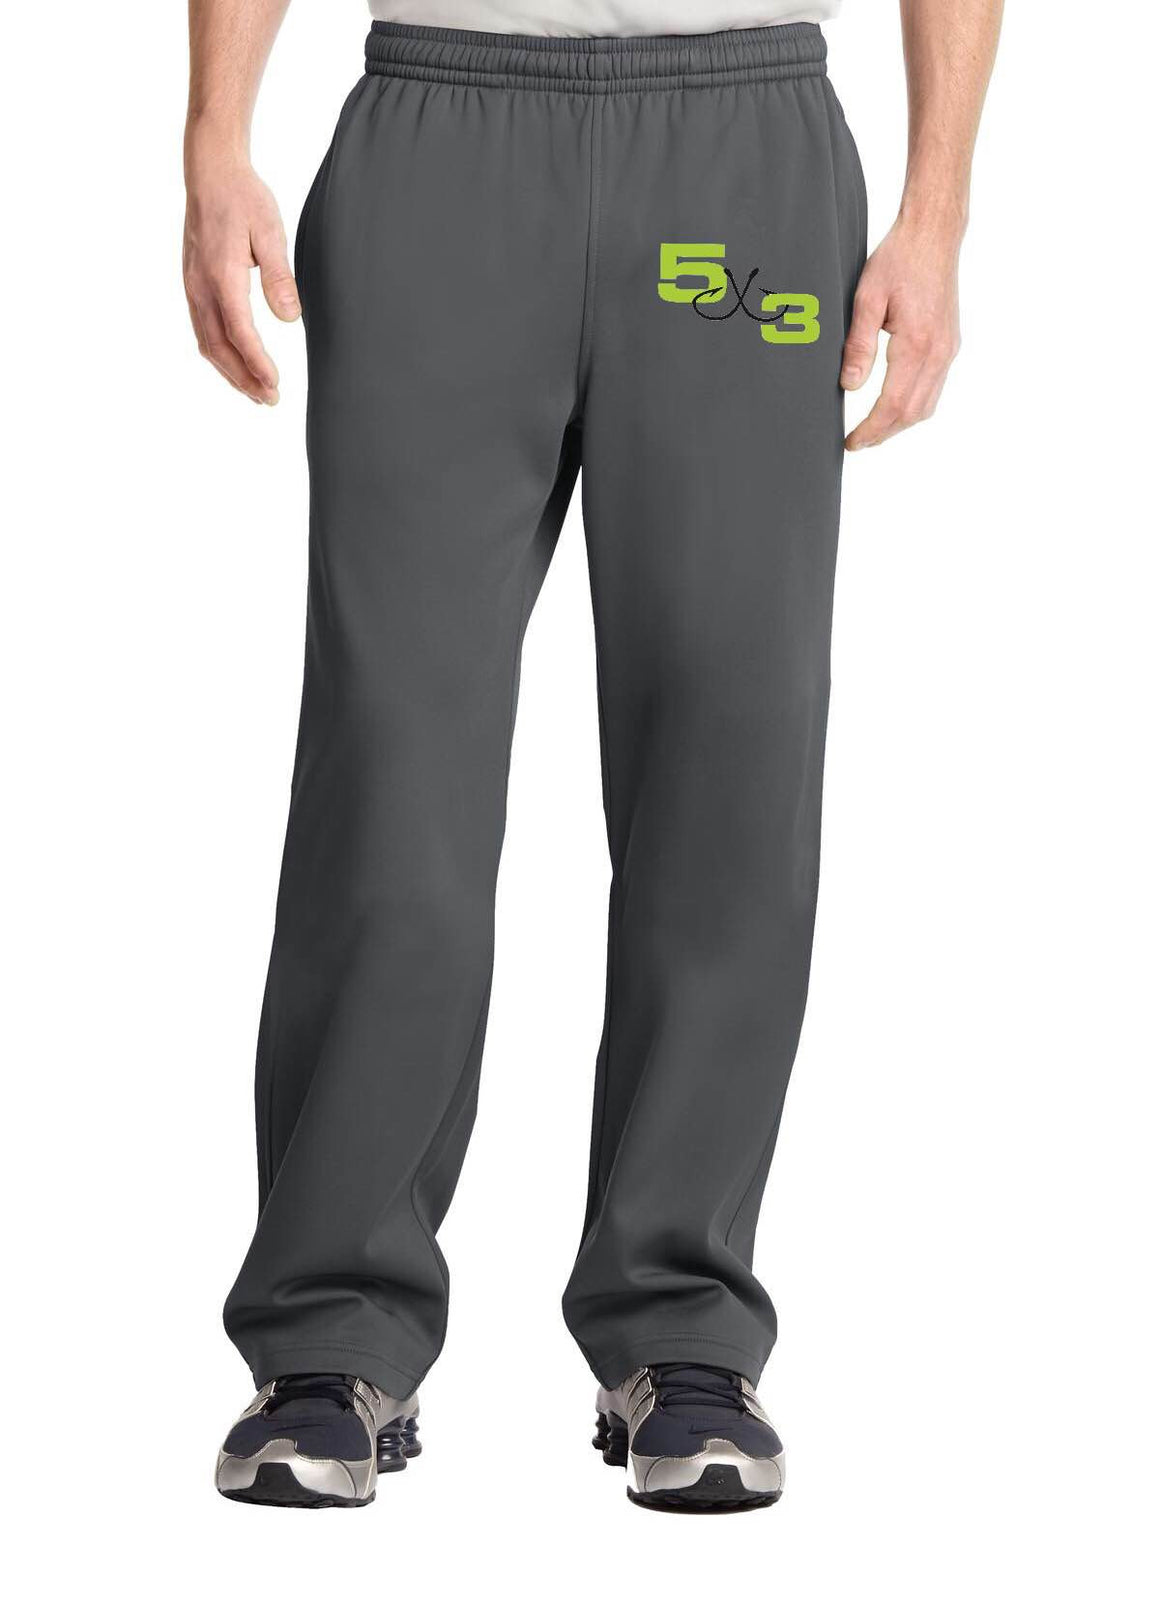 Moisture wicking jogging pant (Gray With Neon Logo)PRE-ORDER